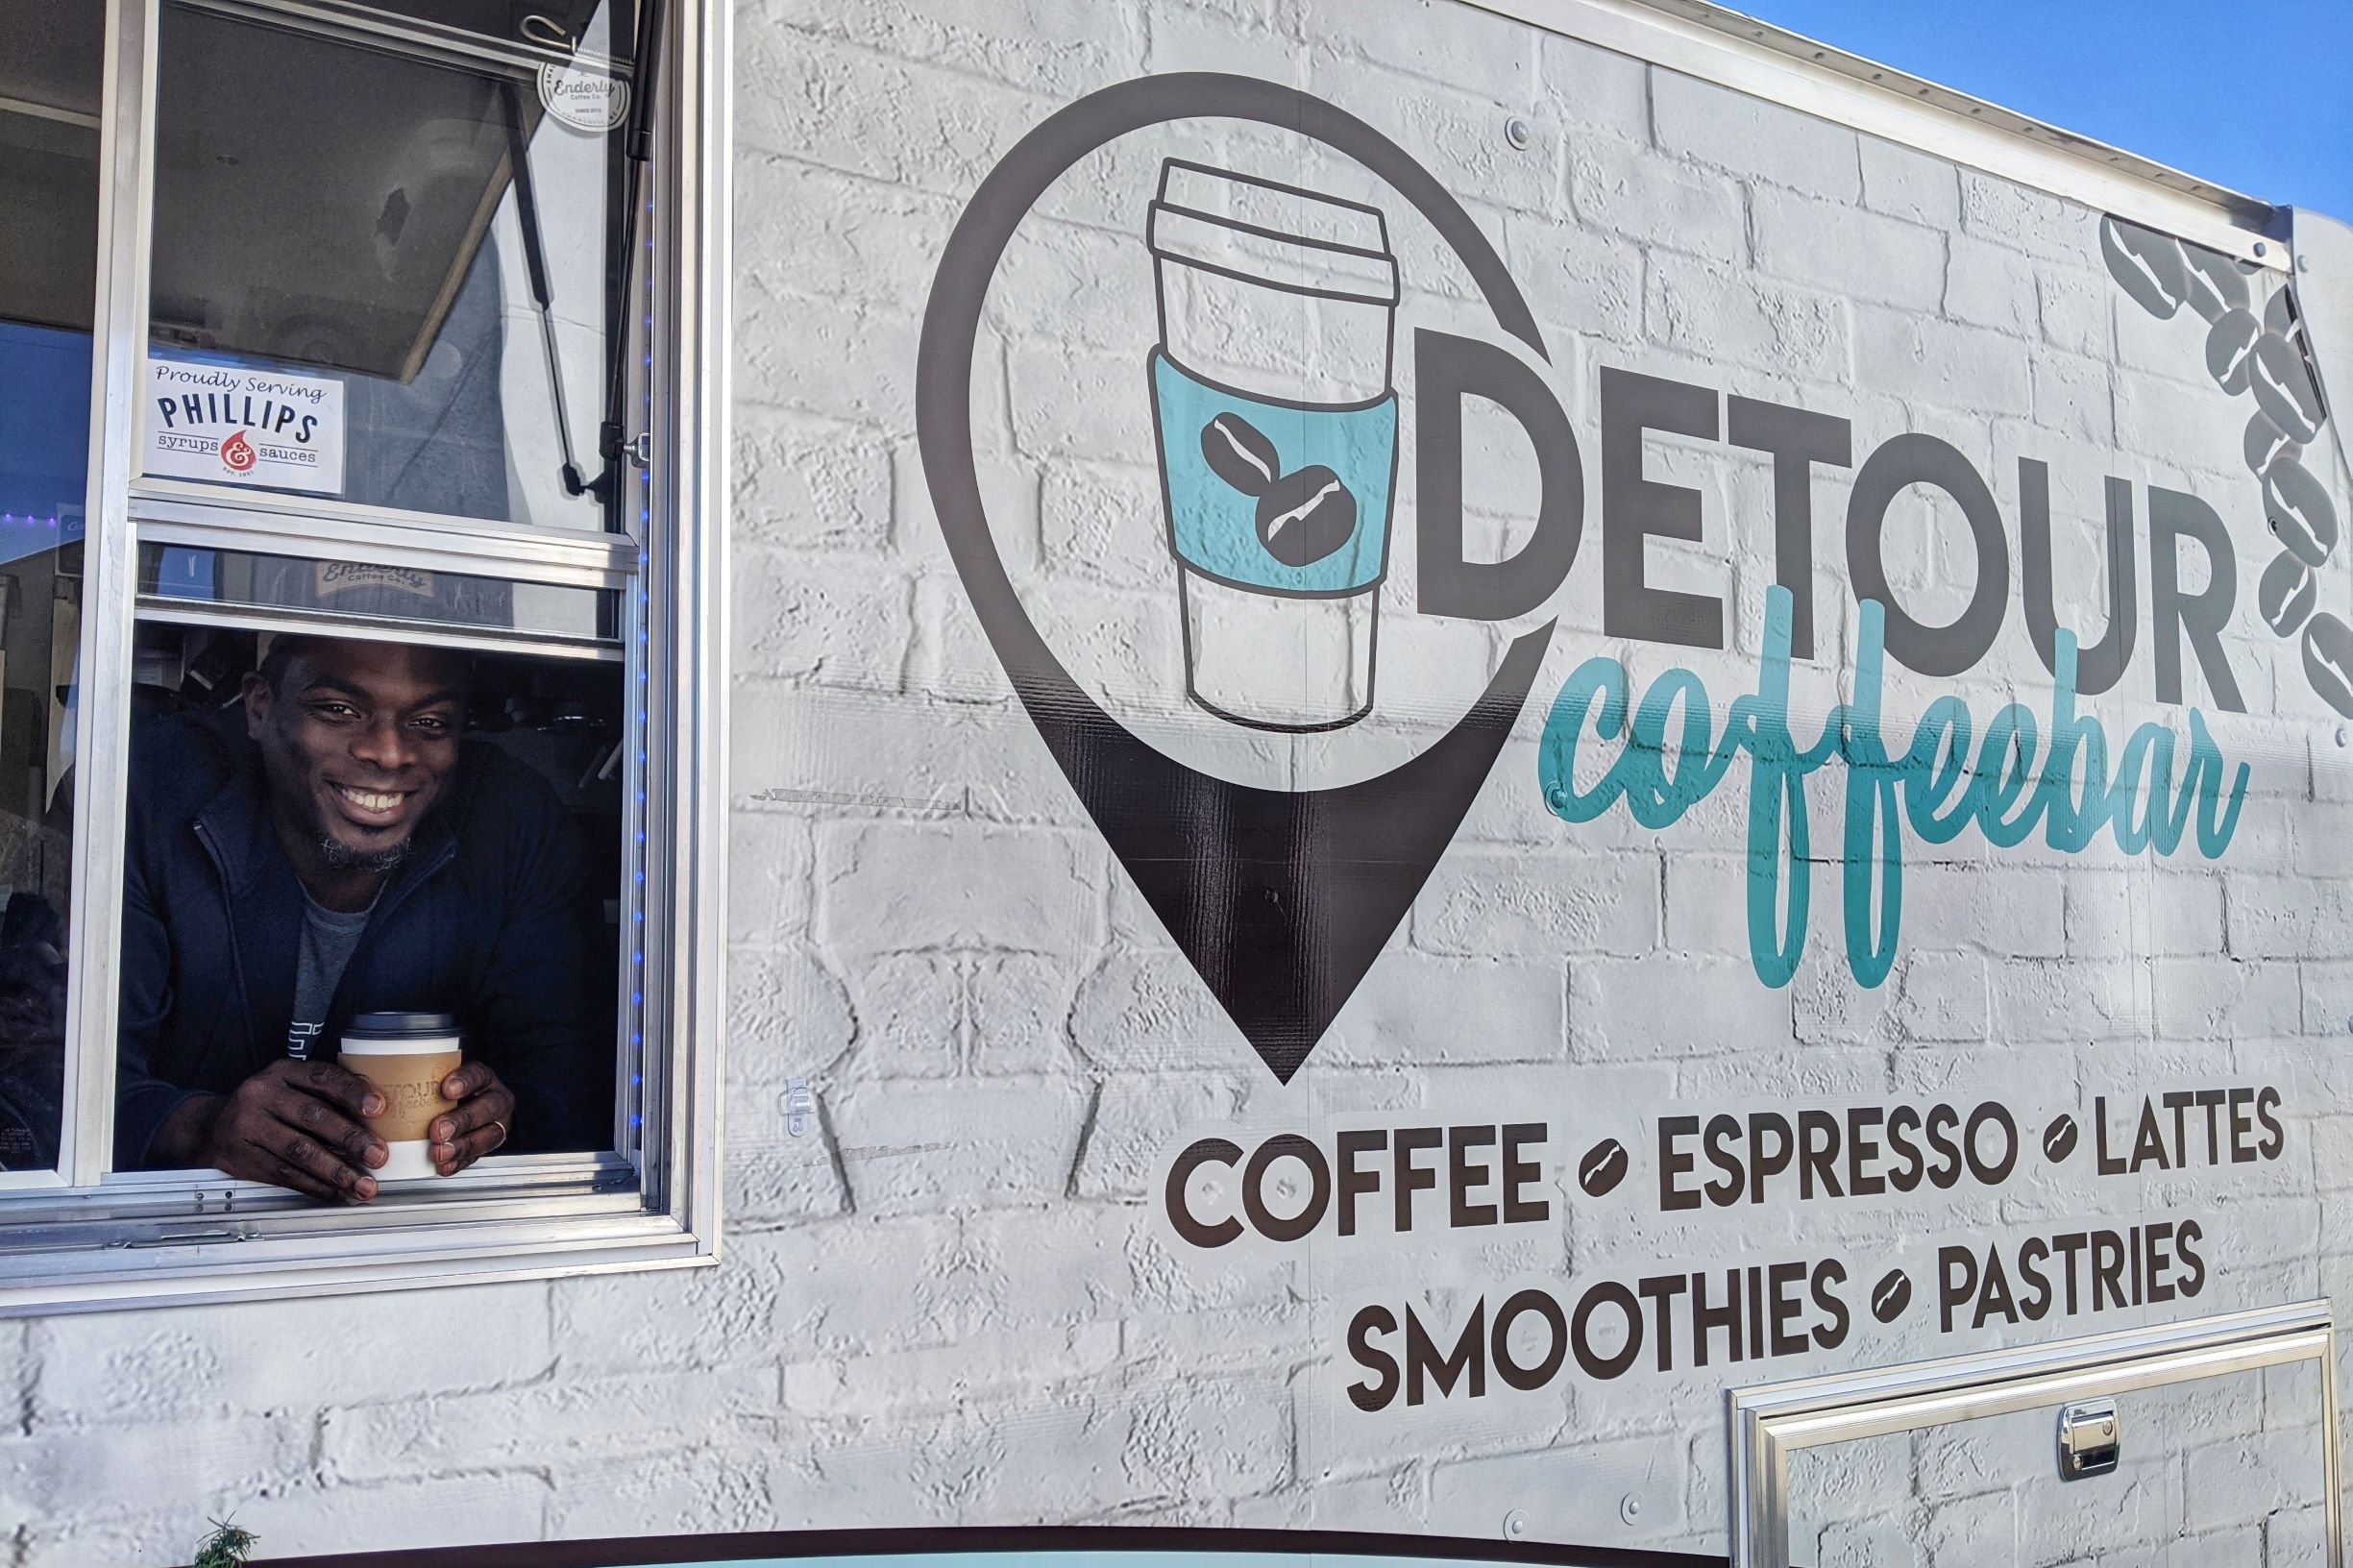 Mike-Hargett-Detour-Coffee-Bar-1